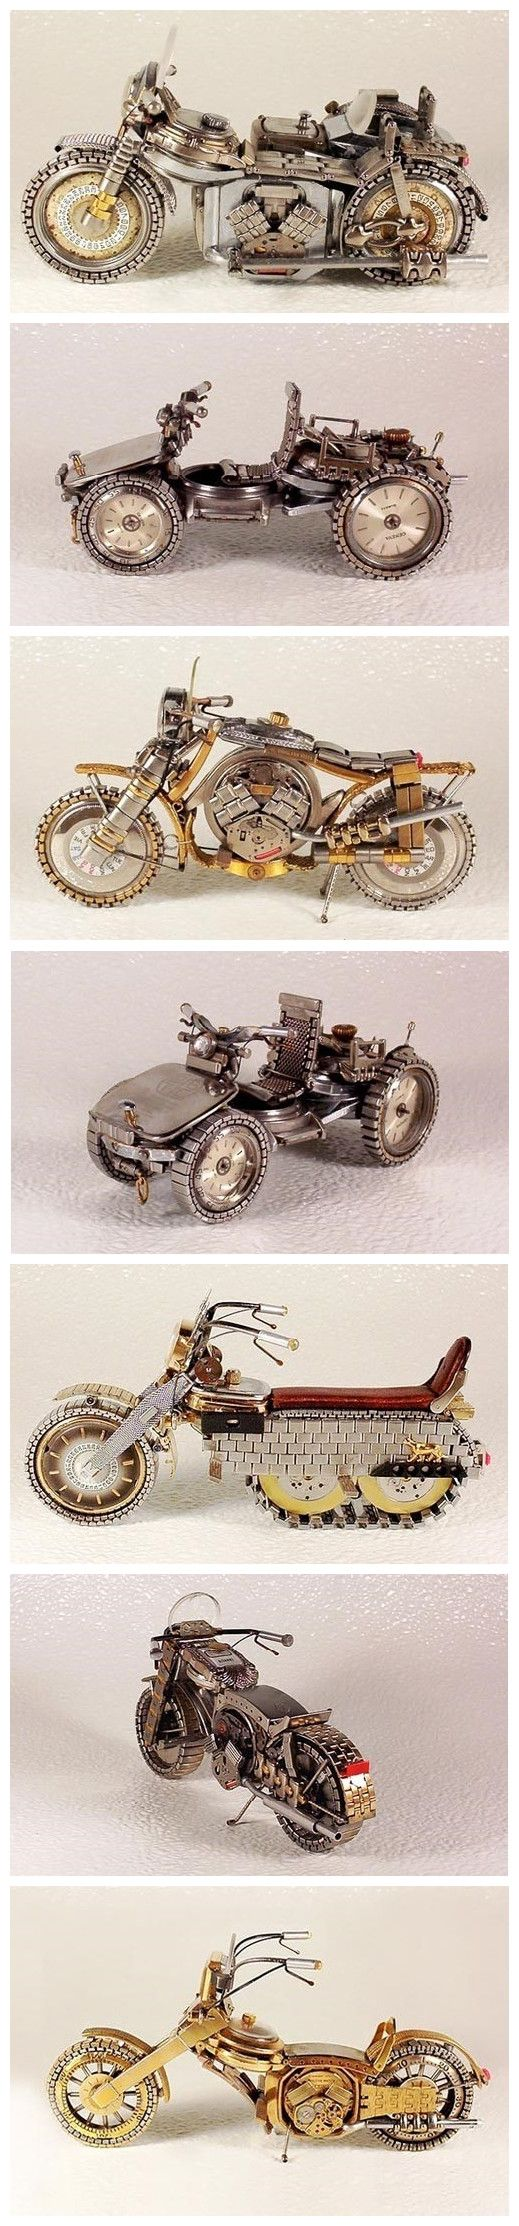 Motorcycles made from watch parts.